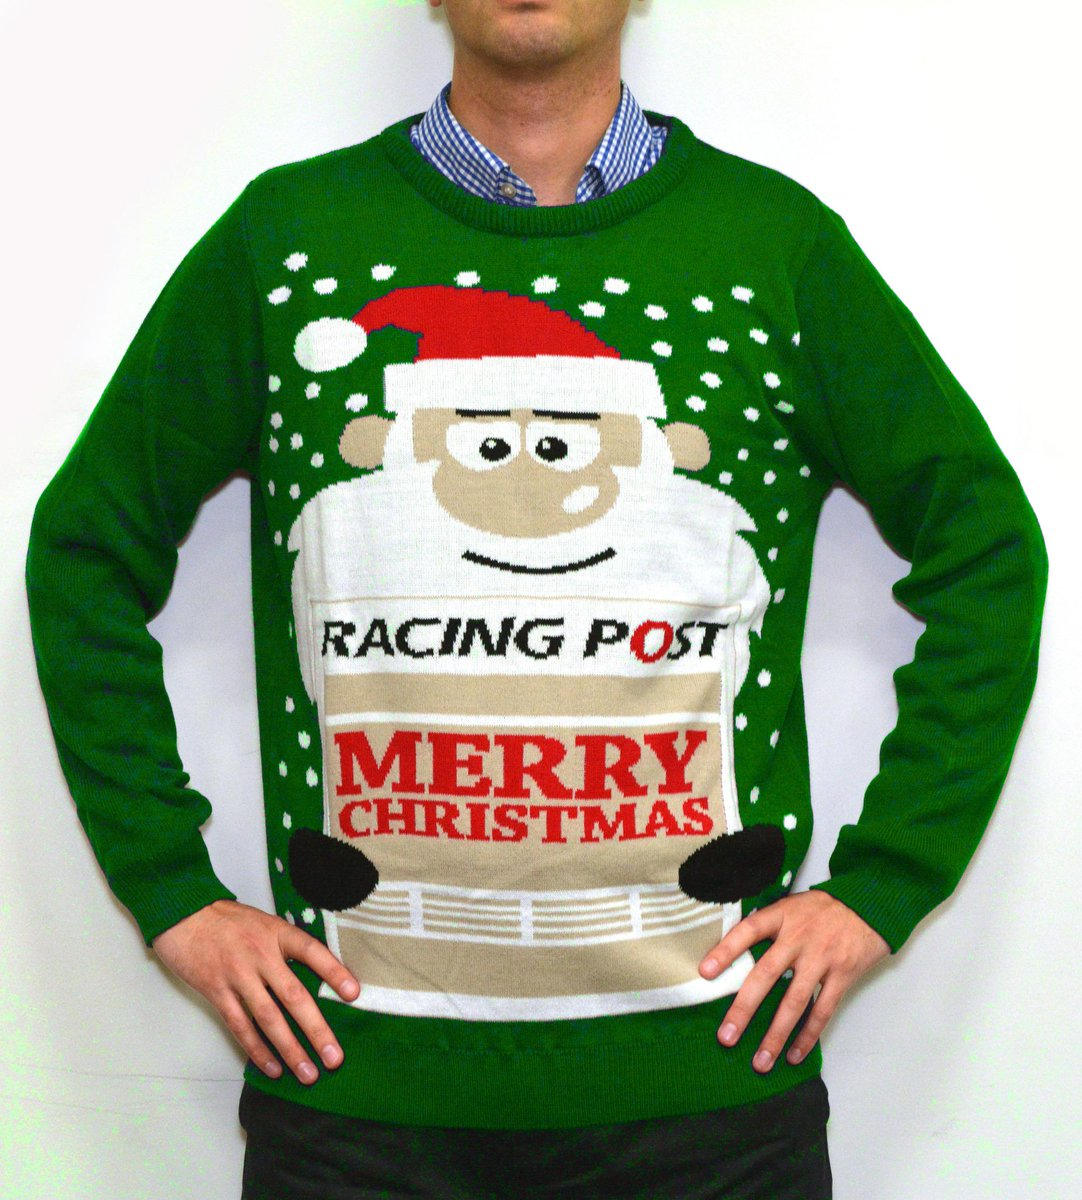 We've got 10 of our great Christmas jumpers left to give away. RT for a chance to win #jumpers4jockeys #xmasjumperday http://t.co/mH9xvdLzzg